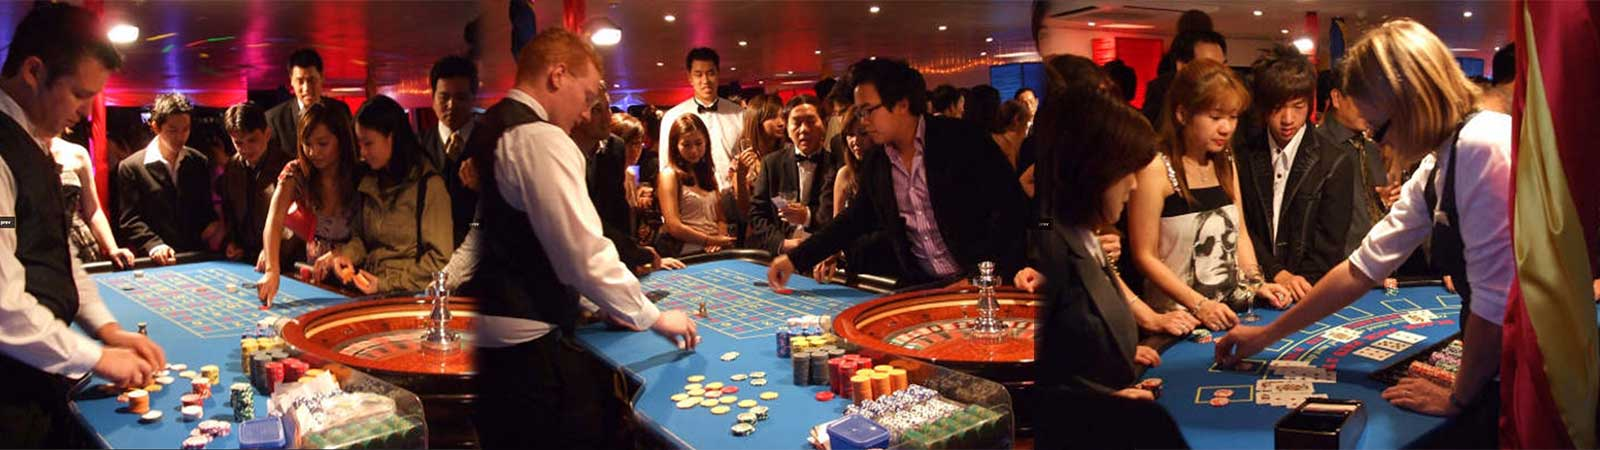 Casino Boat Party